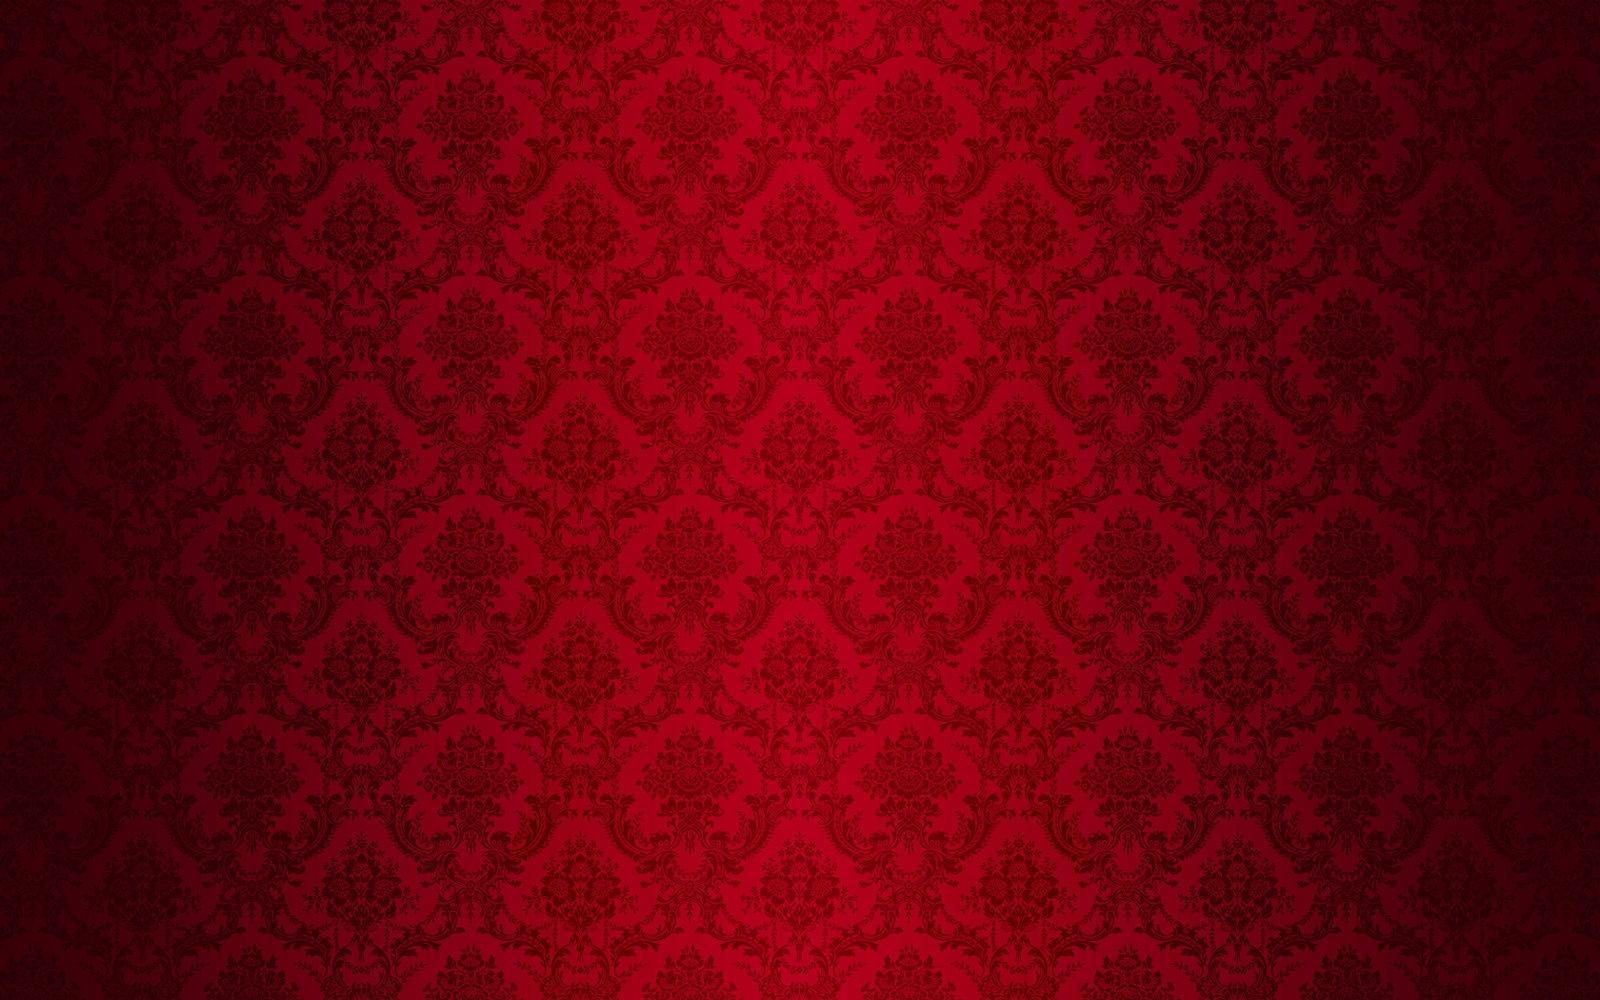 10 Vintage Red Backgrounds Hq Backgrounds Freecreatives